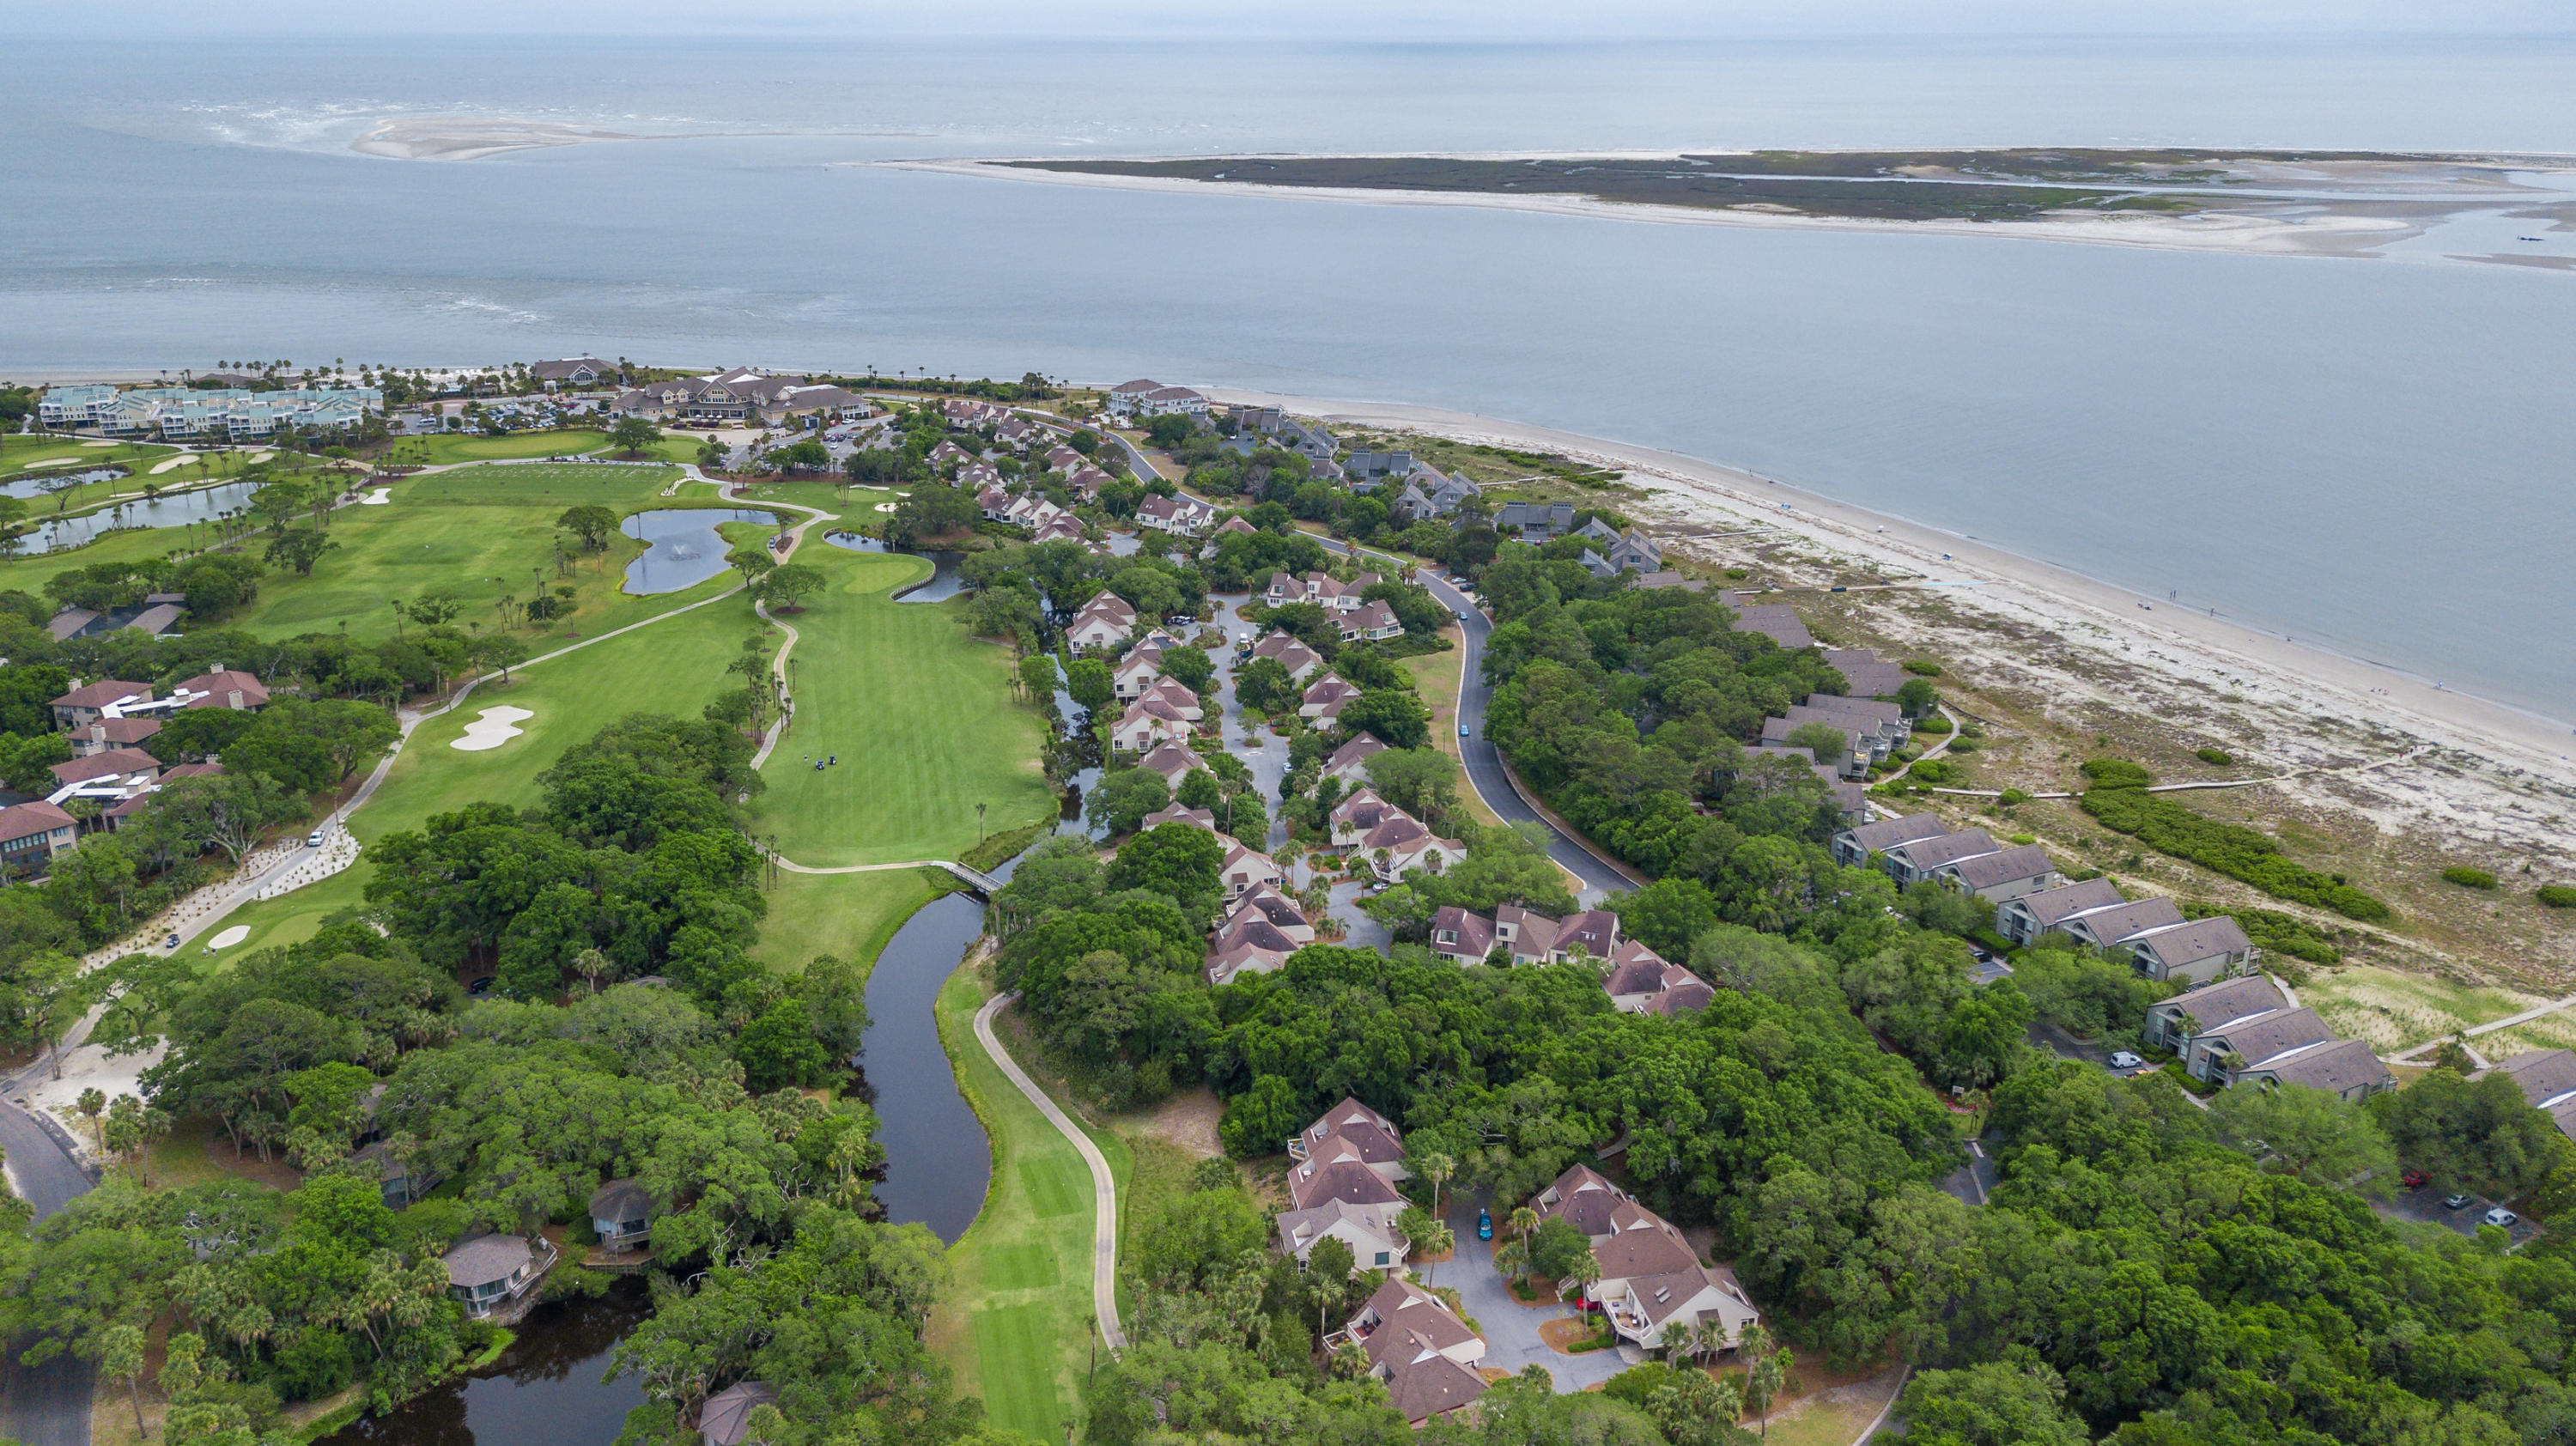 Seabrook Island Homes For Sale - 1329 Pelican Watch Villas, Seabrook Island, SC - 8